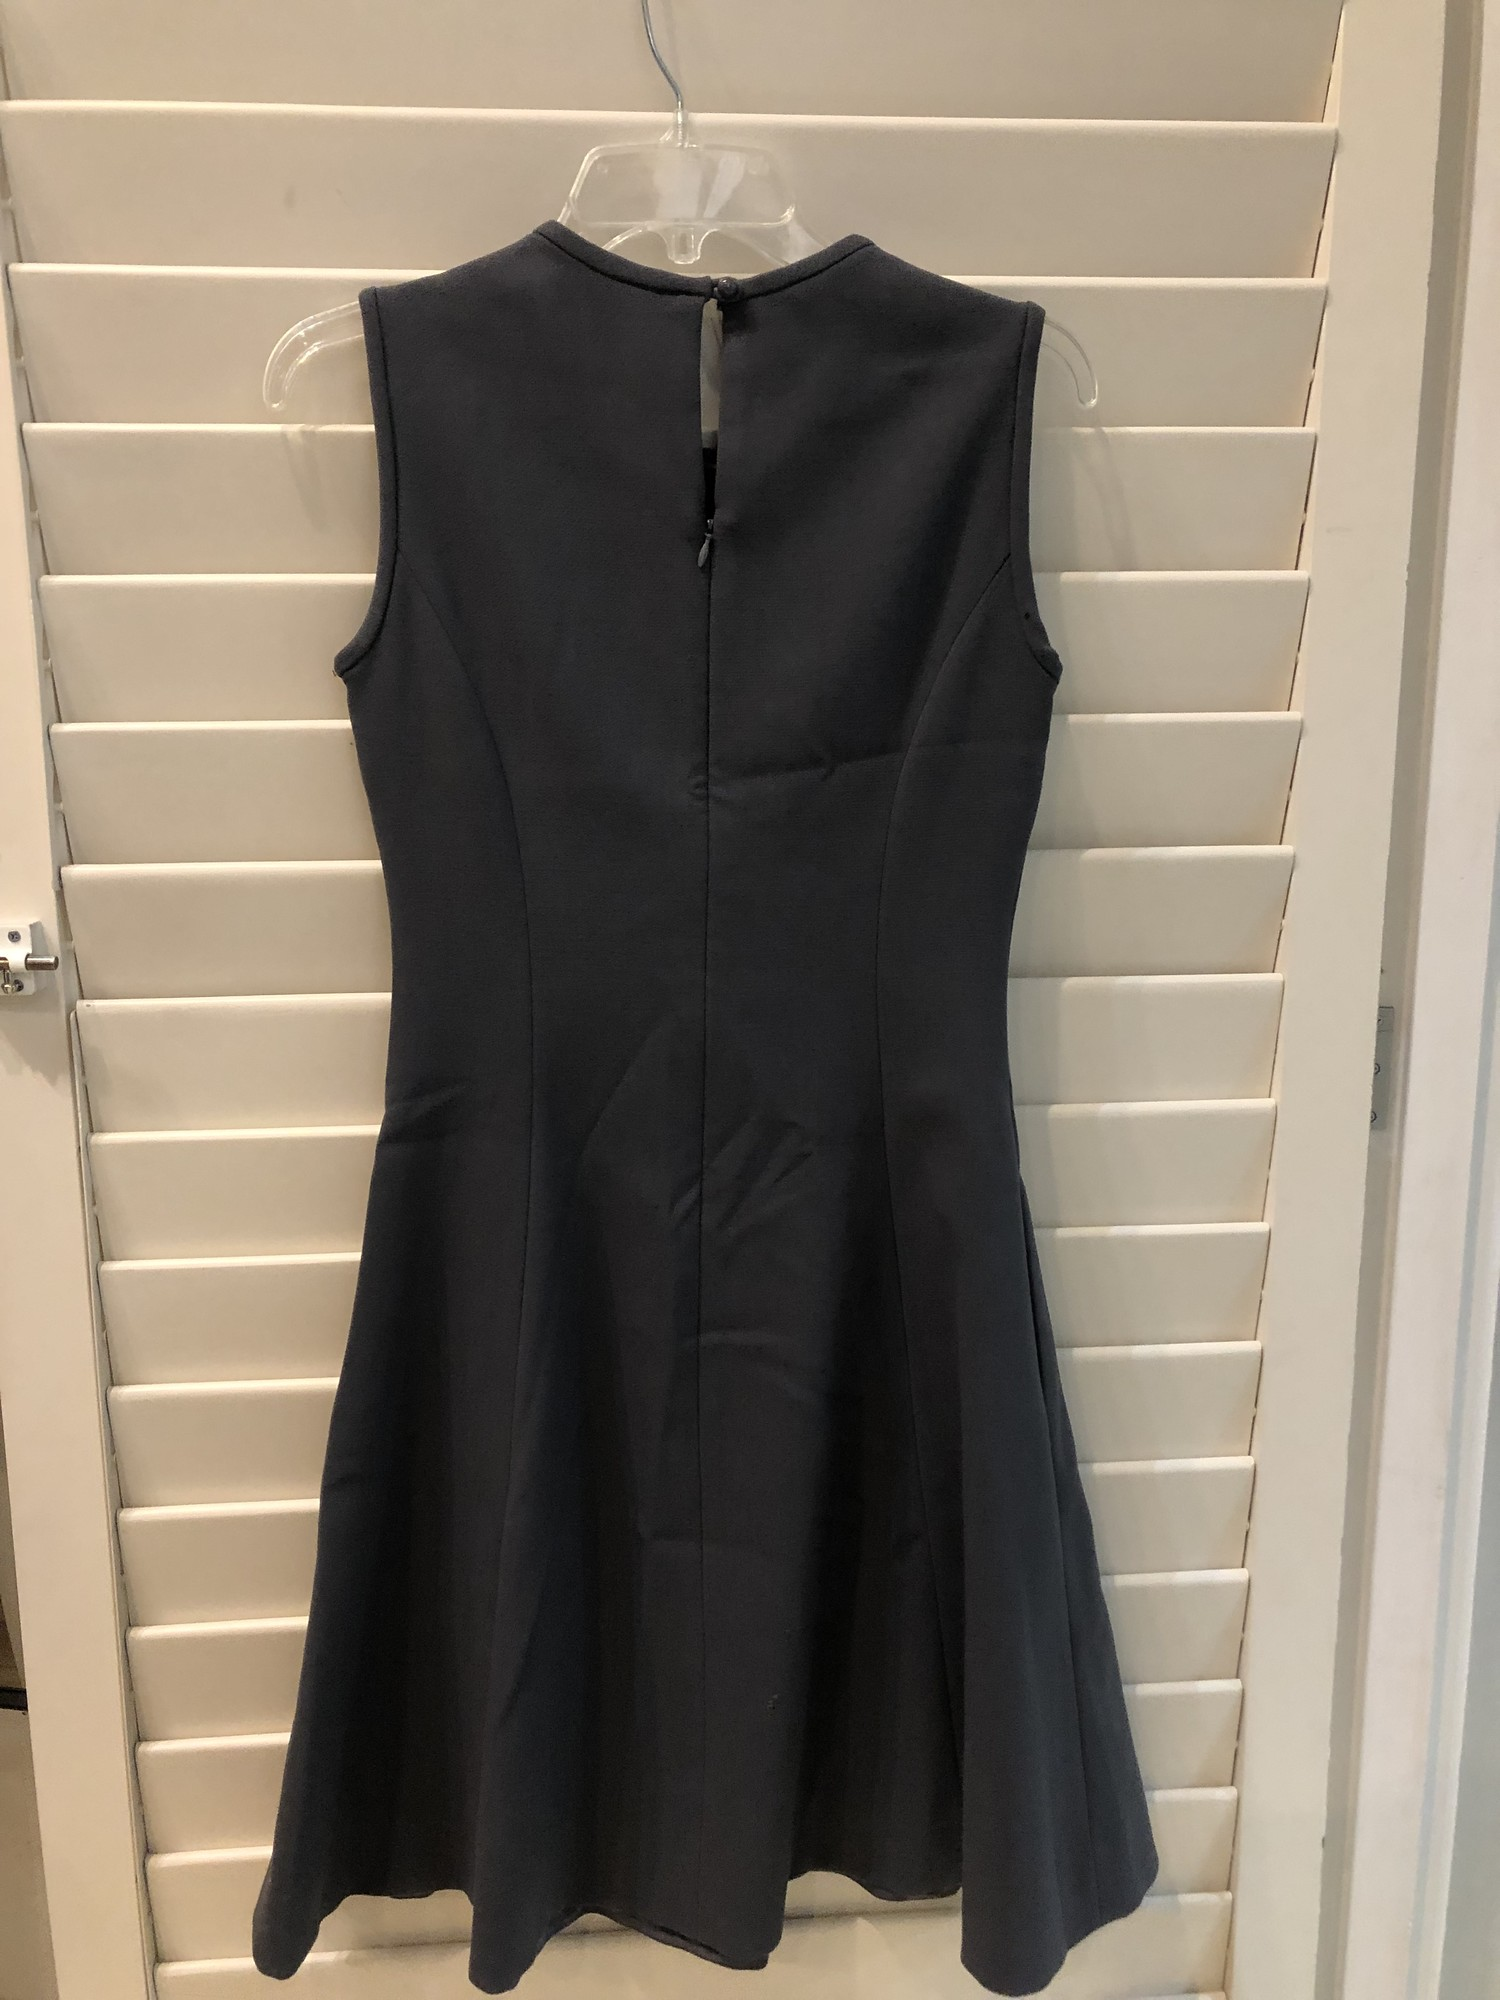 Kate Spade, Gray sleeveless dress.  Gathering around neckline and darted bustline lend much visual interest to this classic piece.  Figure flattering cut. Size: 4